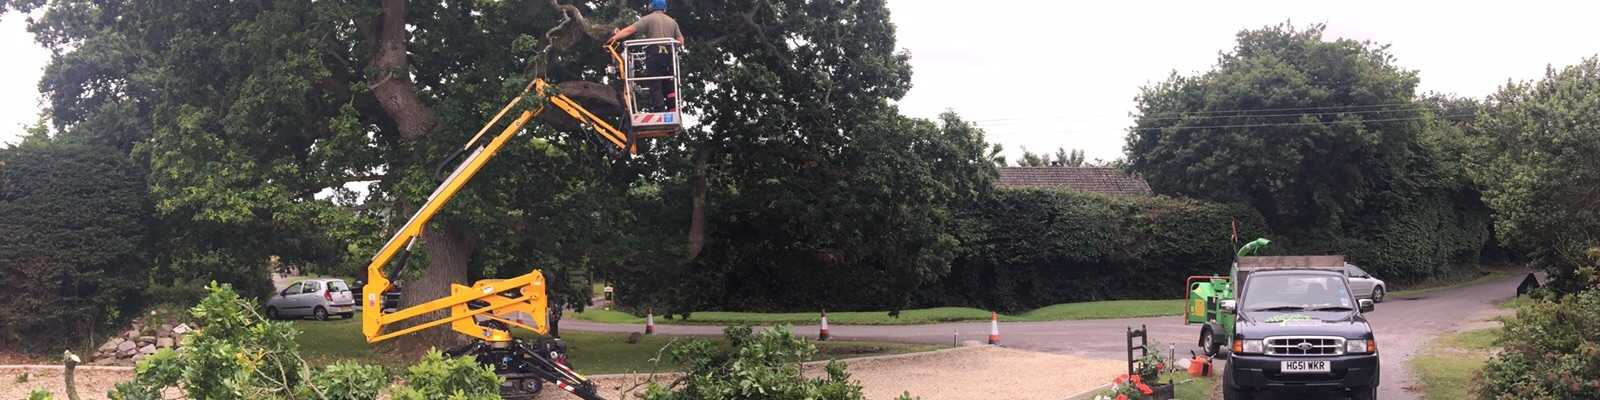 Crane lifting arborist into tree to perform technical dismantles